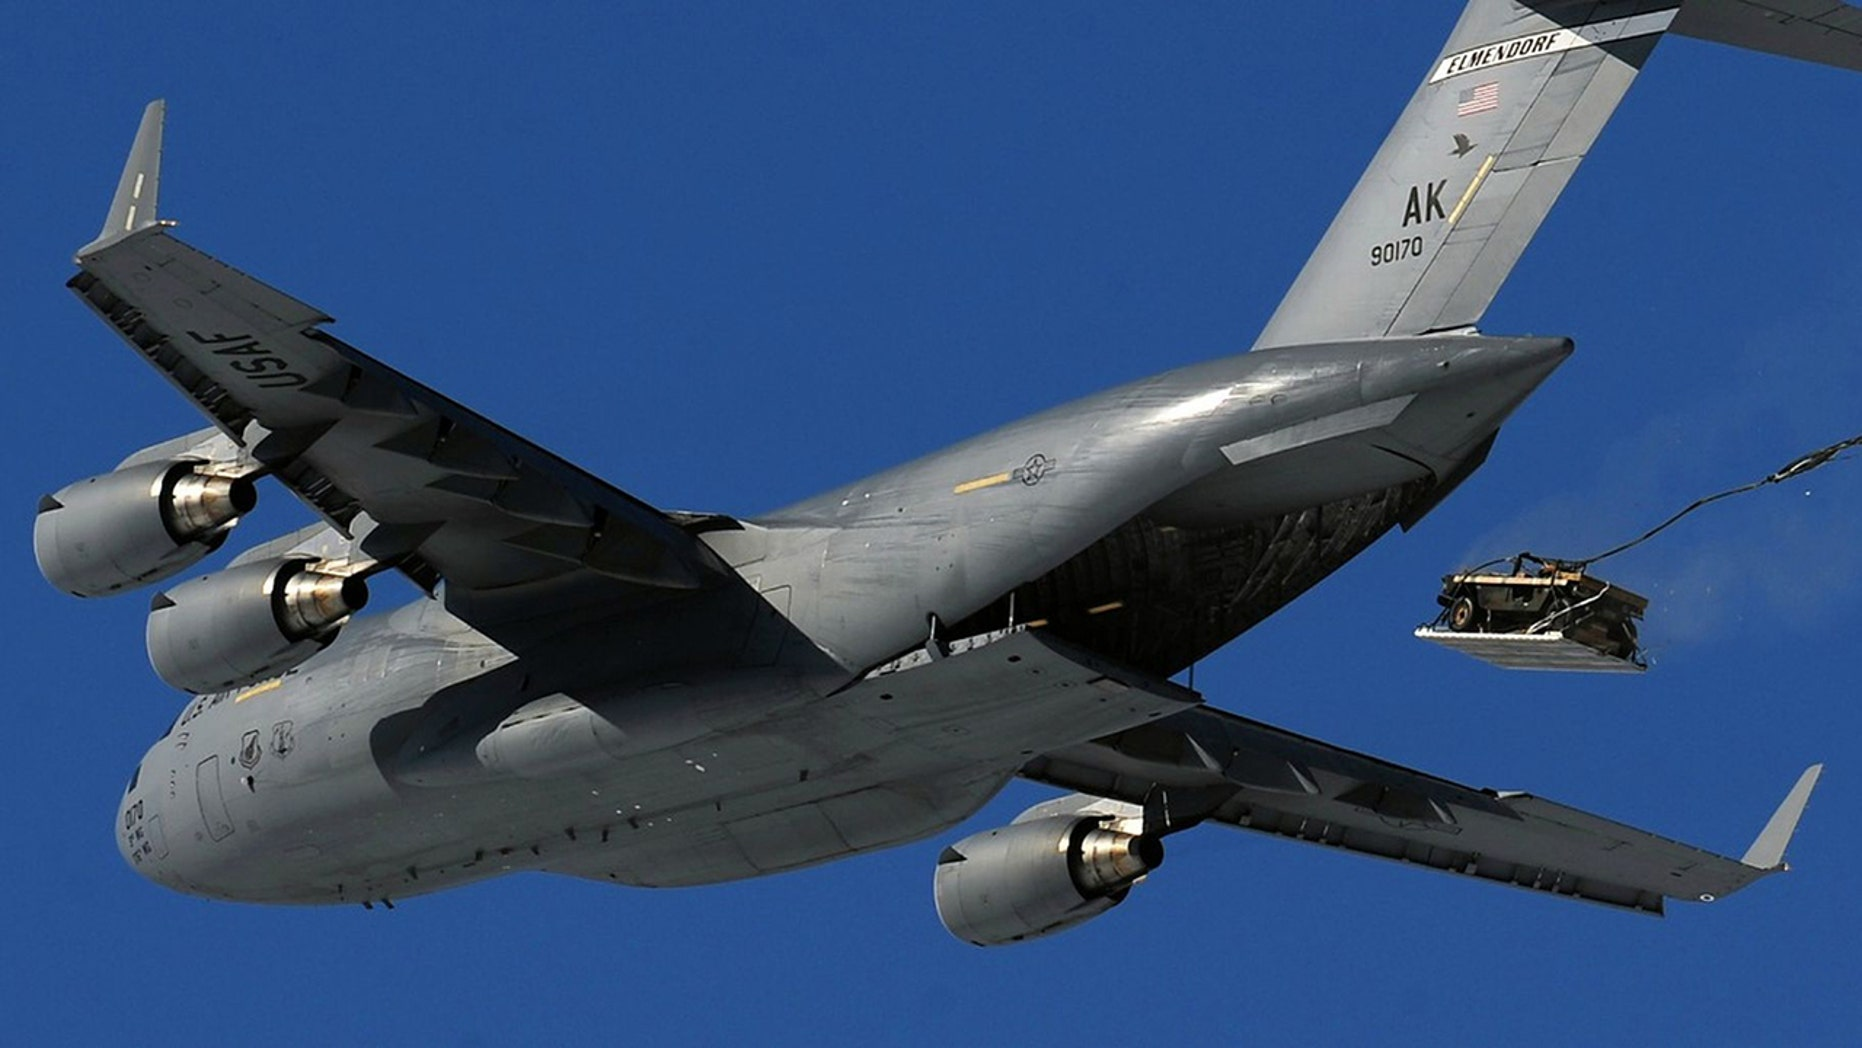 Military officials say an Air Force C-17 prematurely dropped a Humvee by parachute into rural North Carolina, miles from the intended target, but no injuries were reported on the ground.